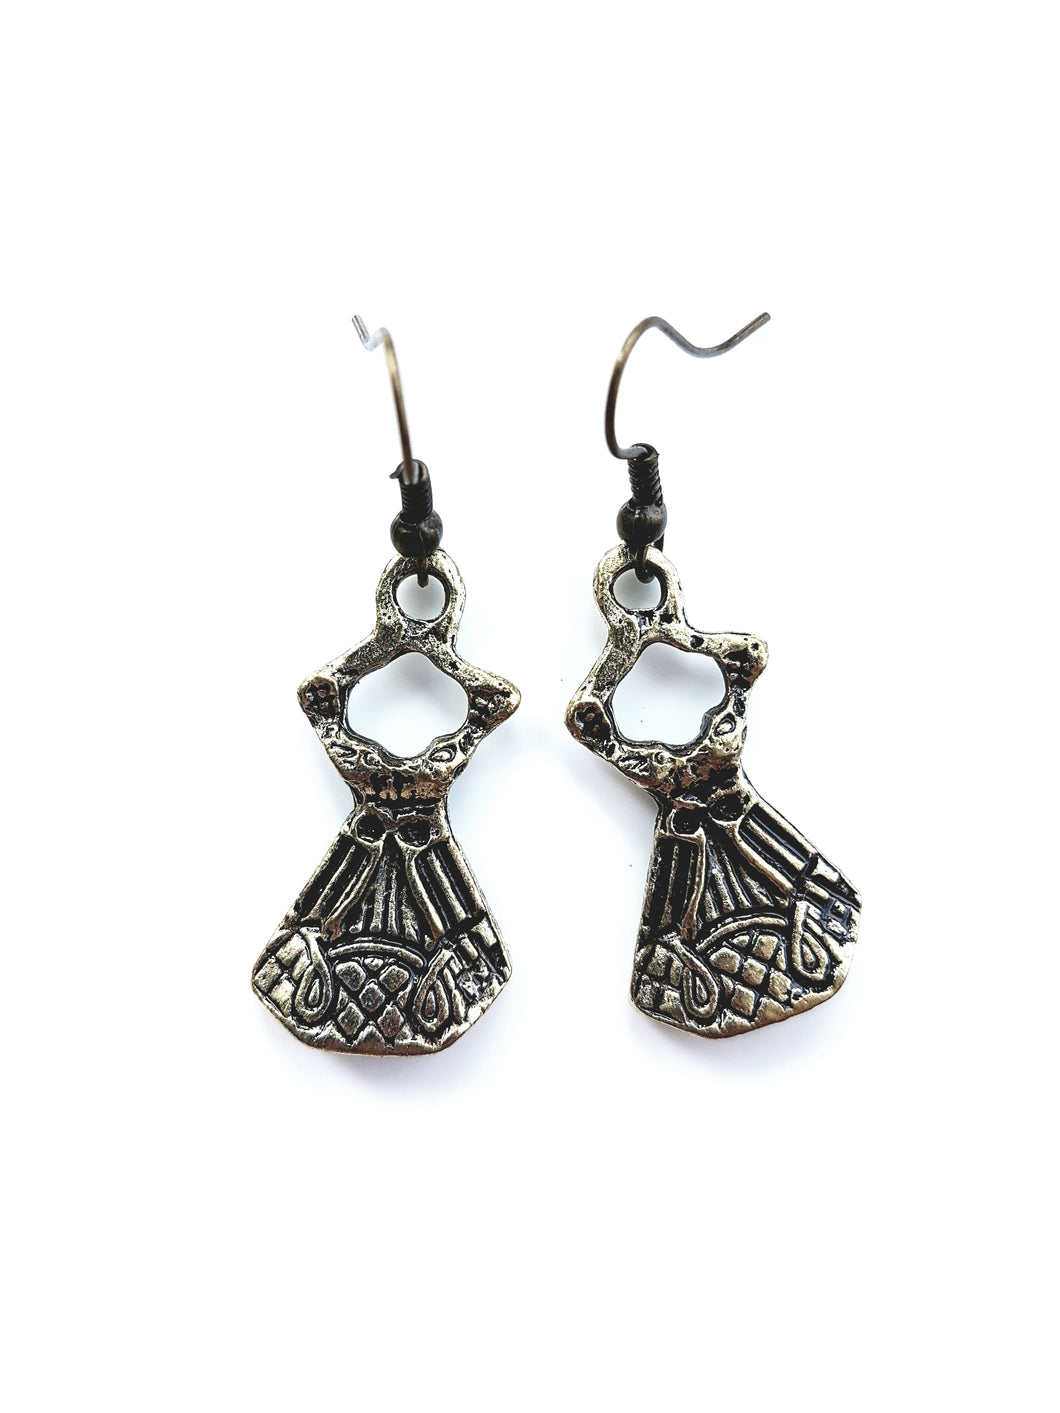 Antique Dress Earrings